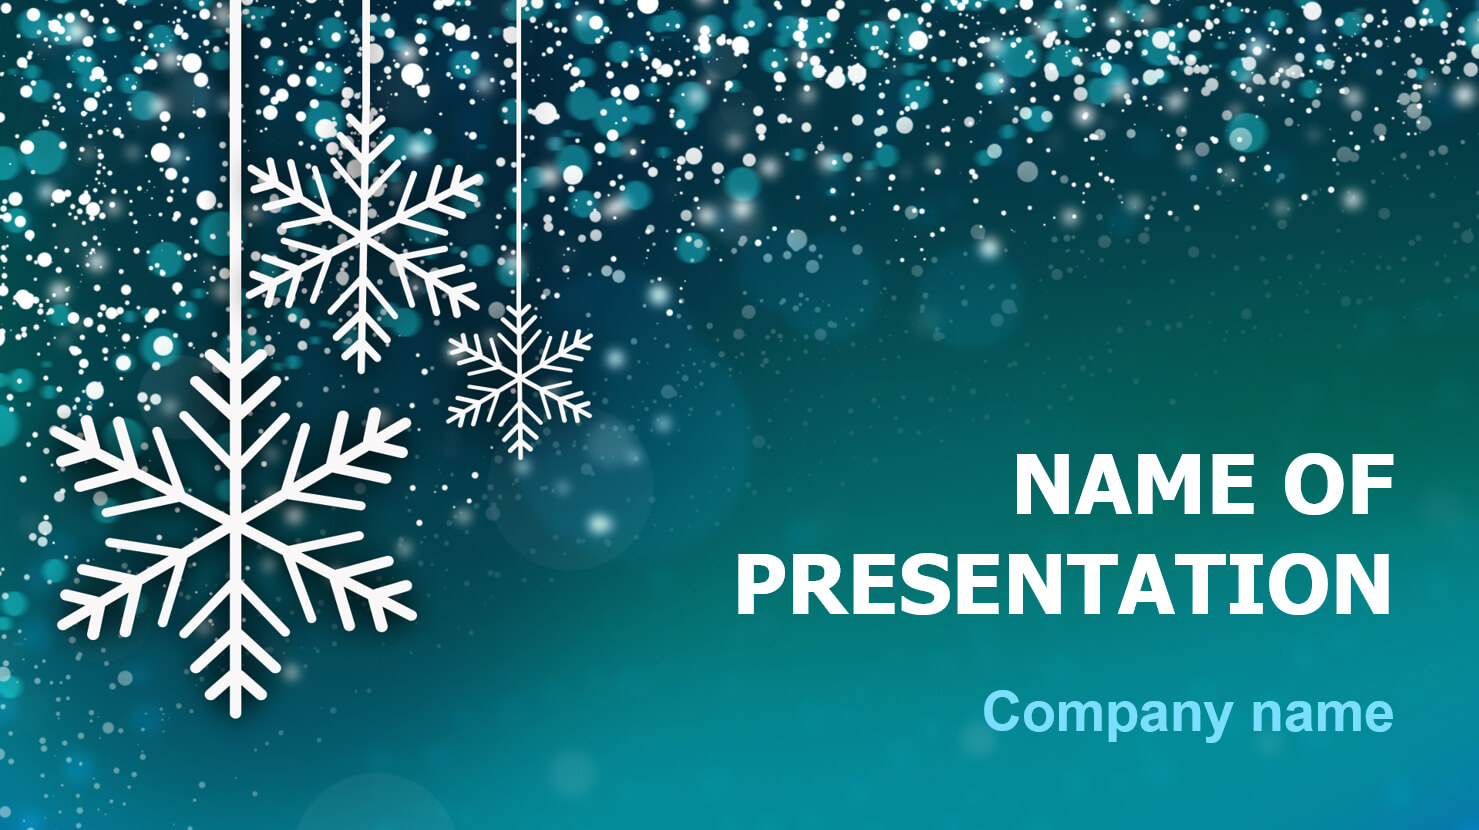 Download Free Snowing Snow Powerpoint Theme For Presentation Within Snow Powerpoint Template